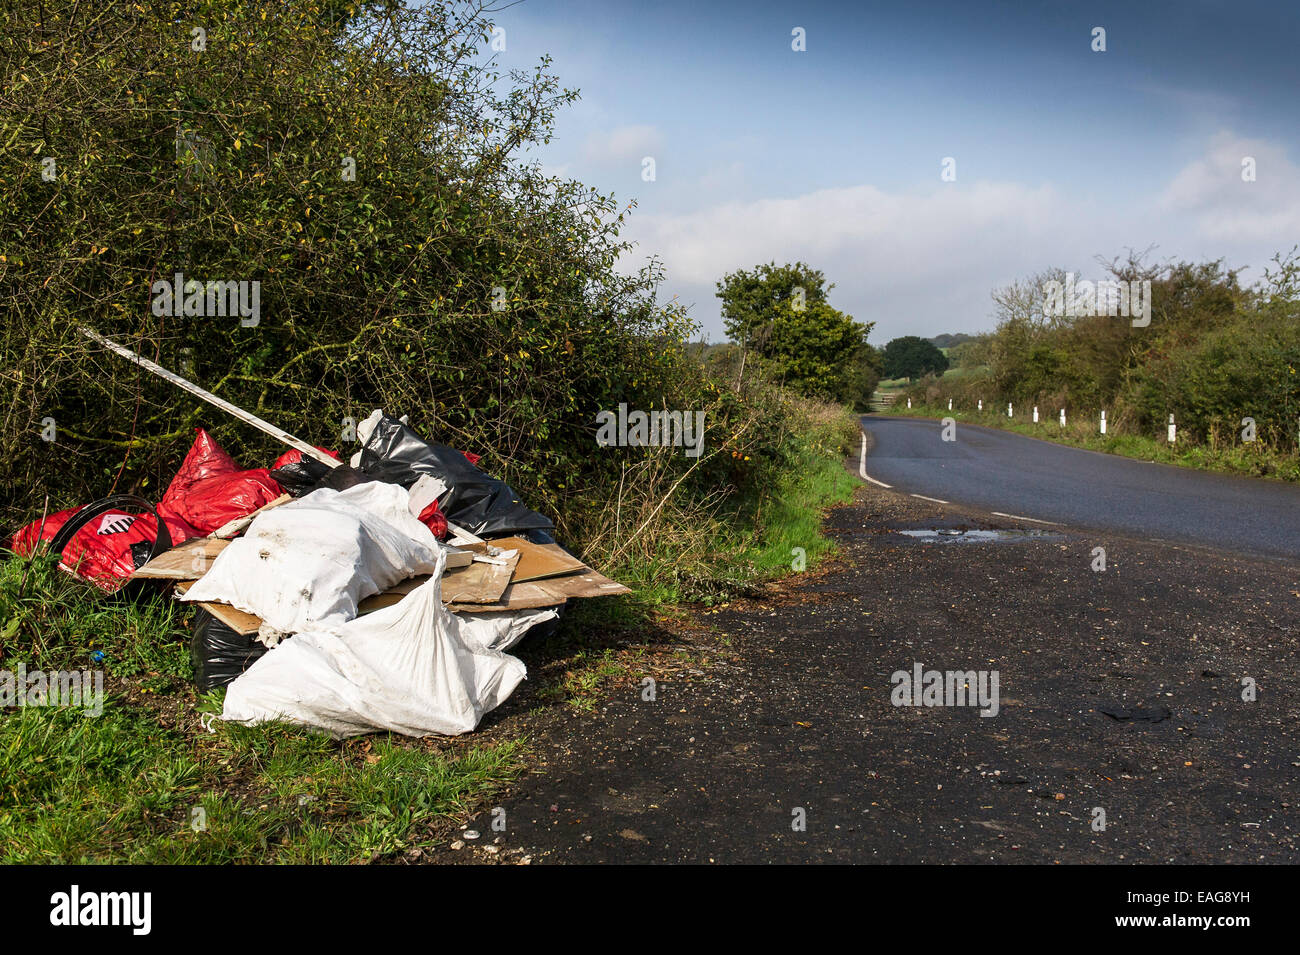 Fly tipping in a lay-by on a road in Essex - Stock Image